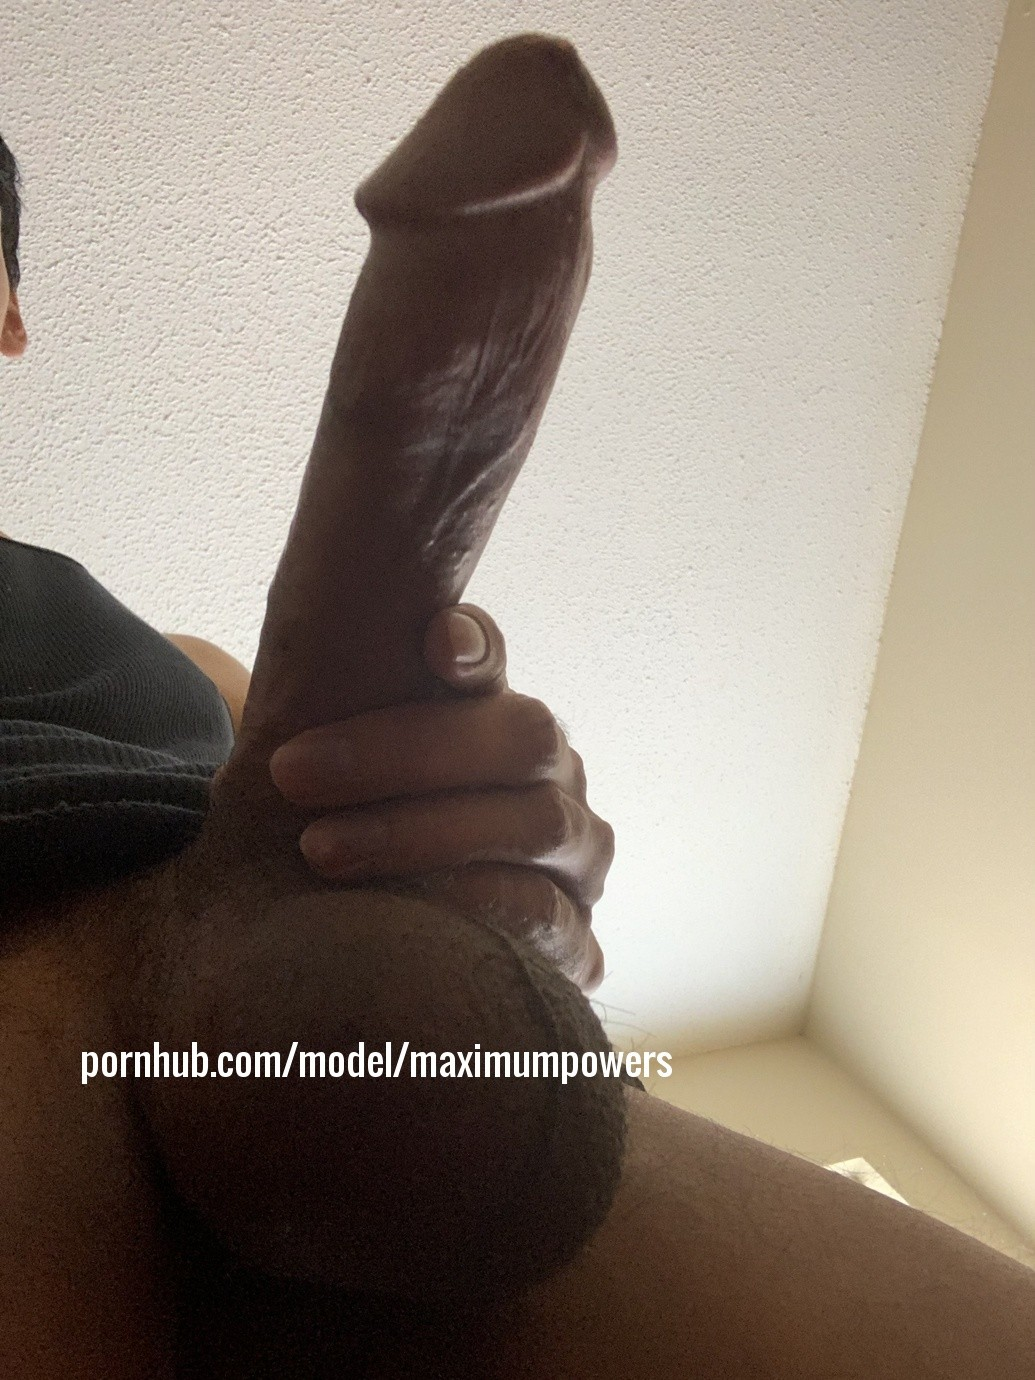 #Dick #Cock #bigcock  #MoveToSharesome-  Album in topic Big Cock Lovers by Max Powers